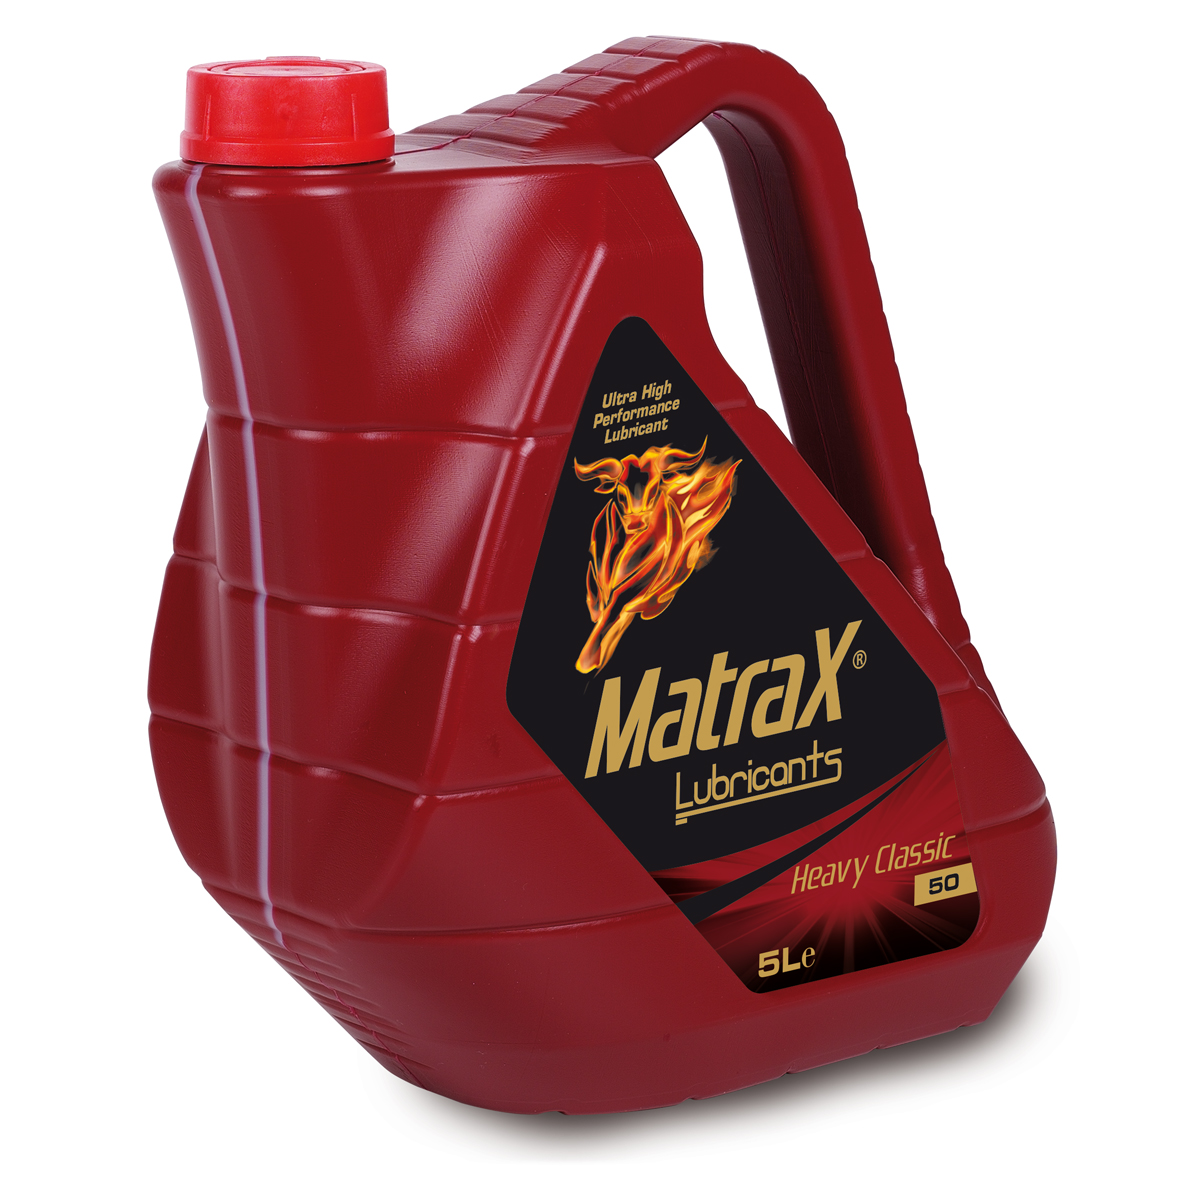 matrax-lubricants-heavy-classic-50-5l